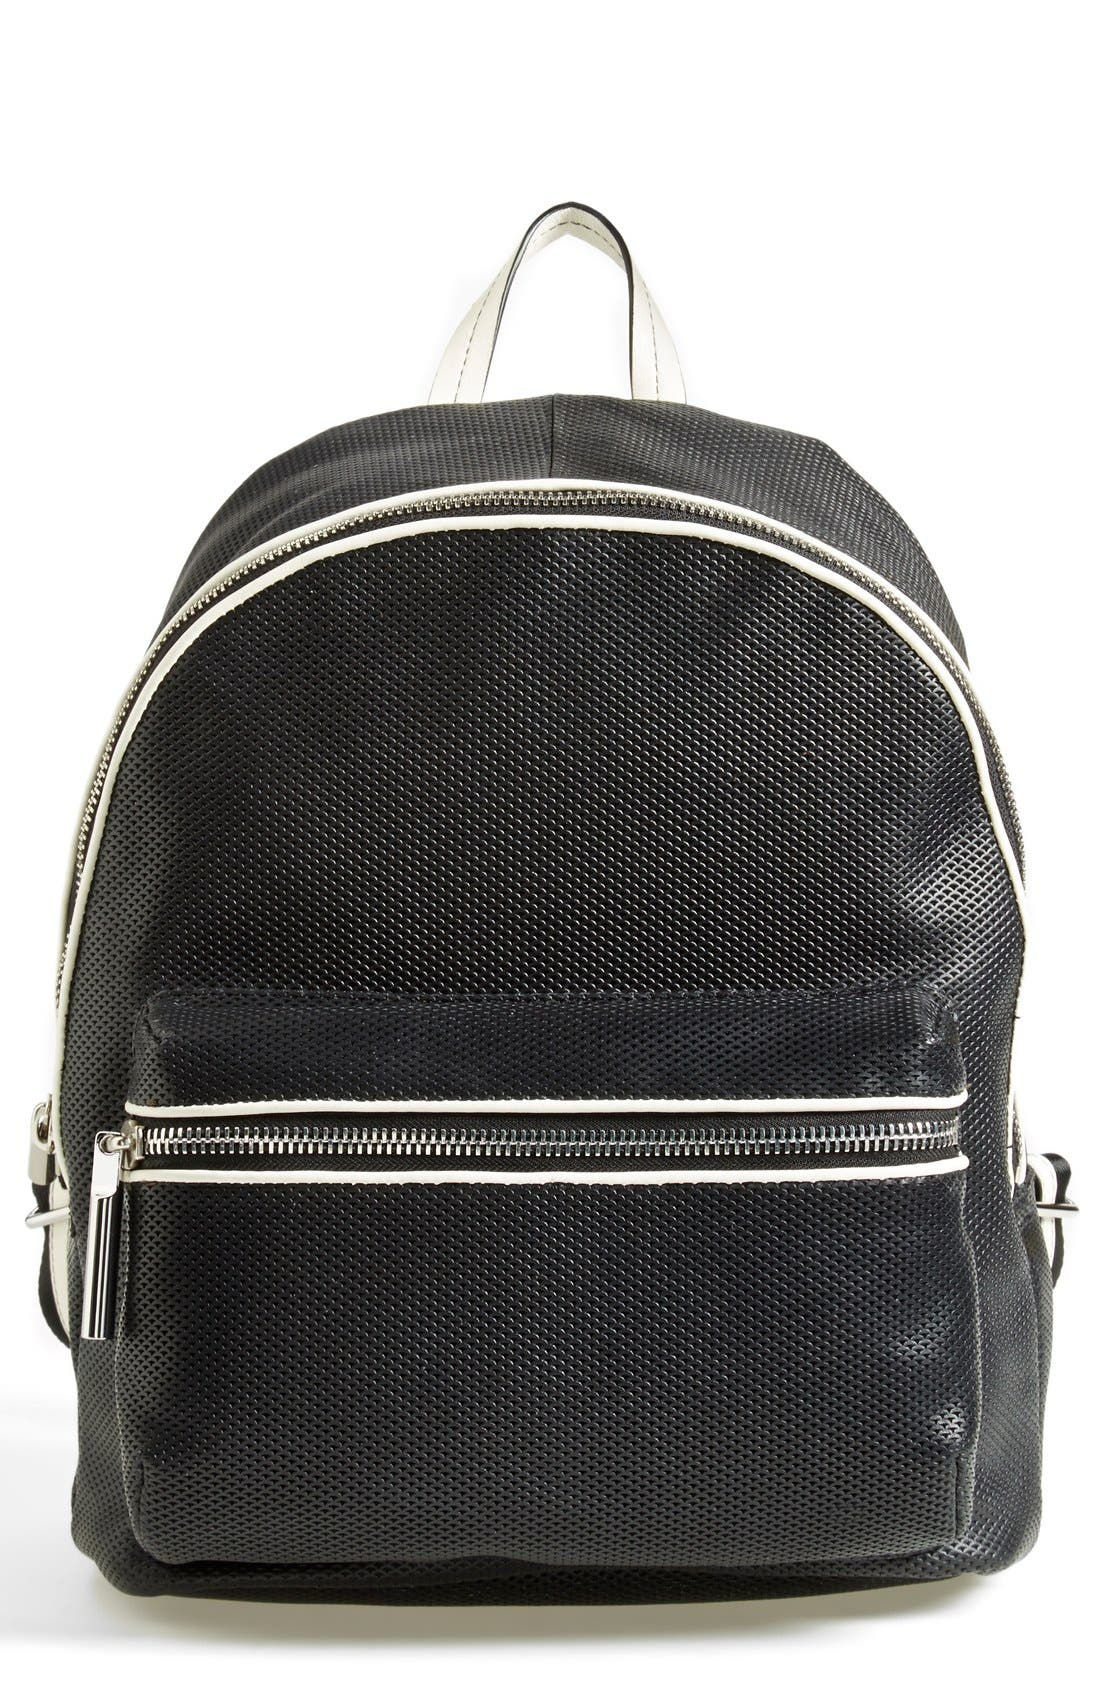 Alternate Image 1 Selected - Elizabeth and James 'Cynnie' Perforated Leather Backpack